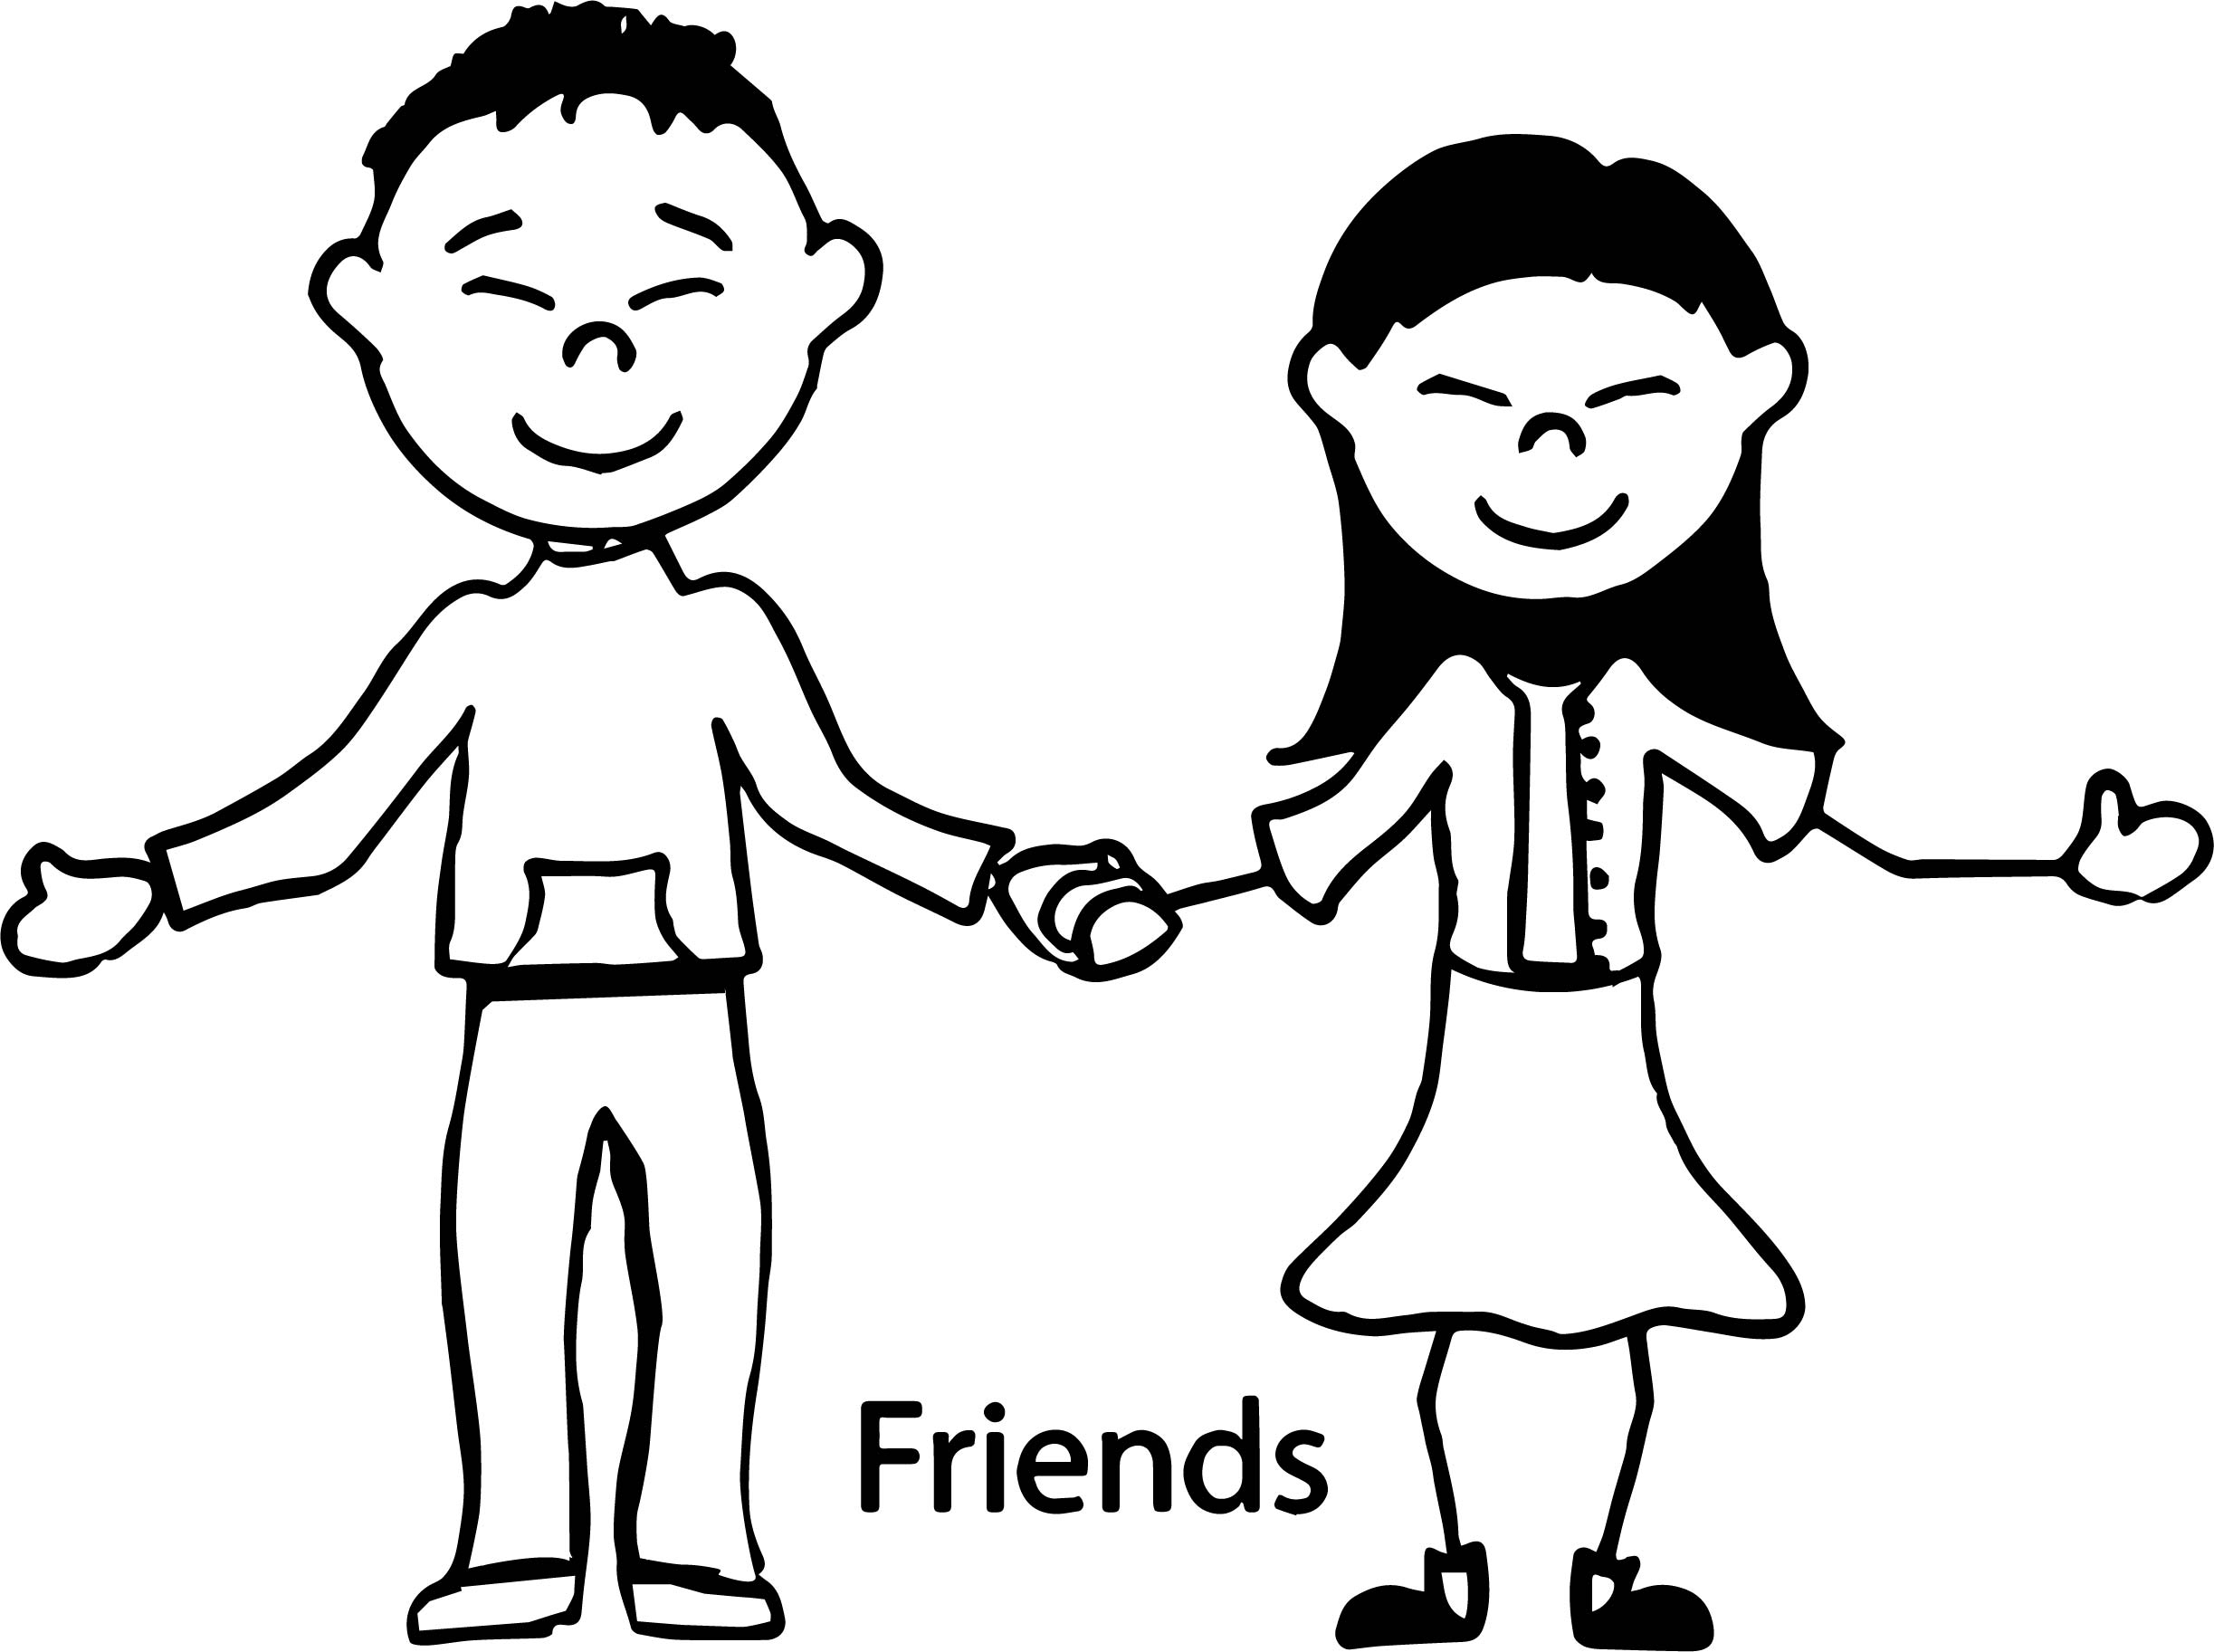 Friendship Coloring Pages - Friendship Children Coloring Page